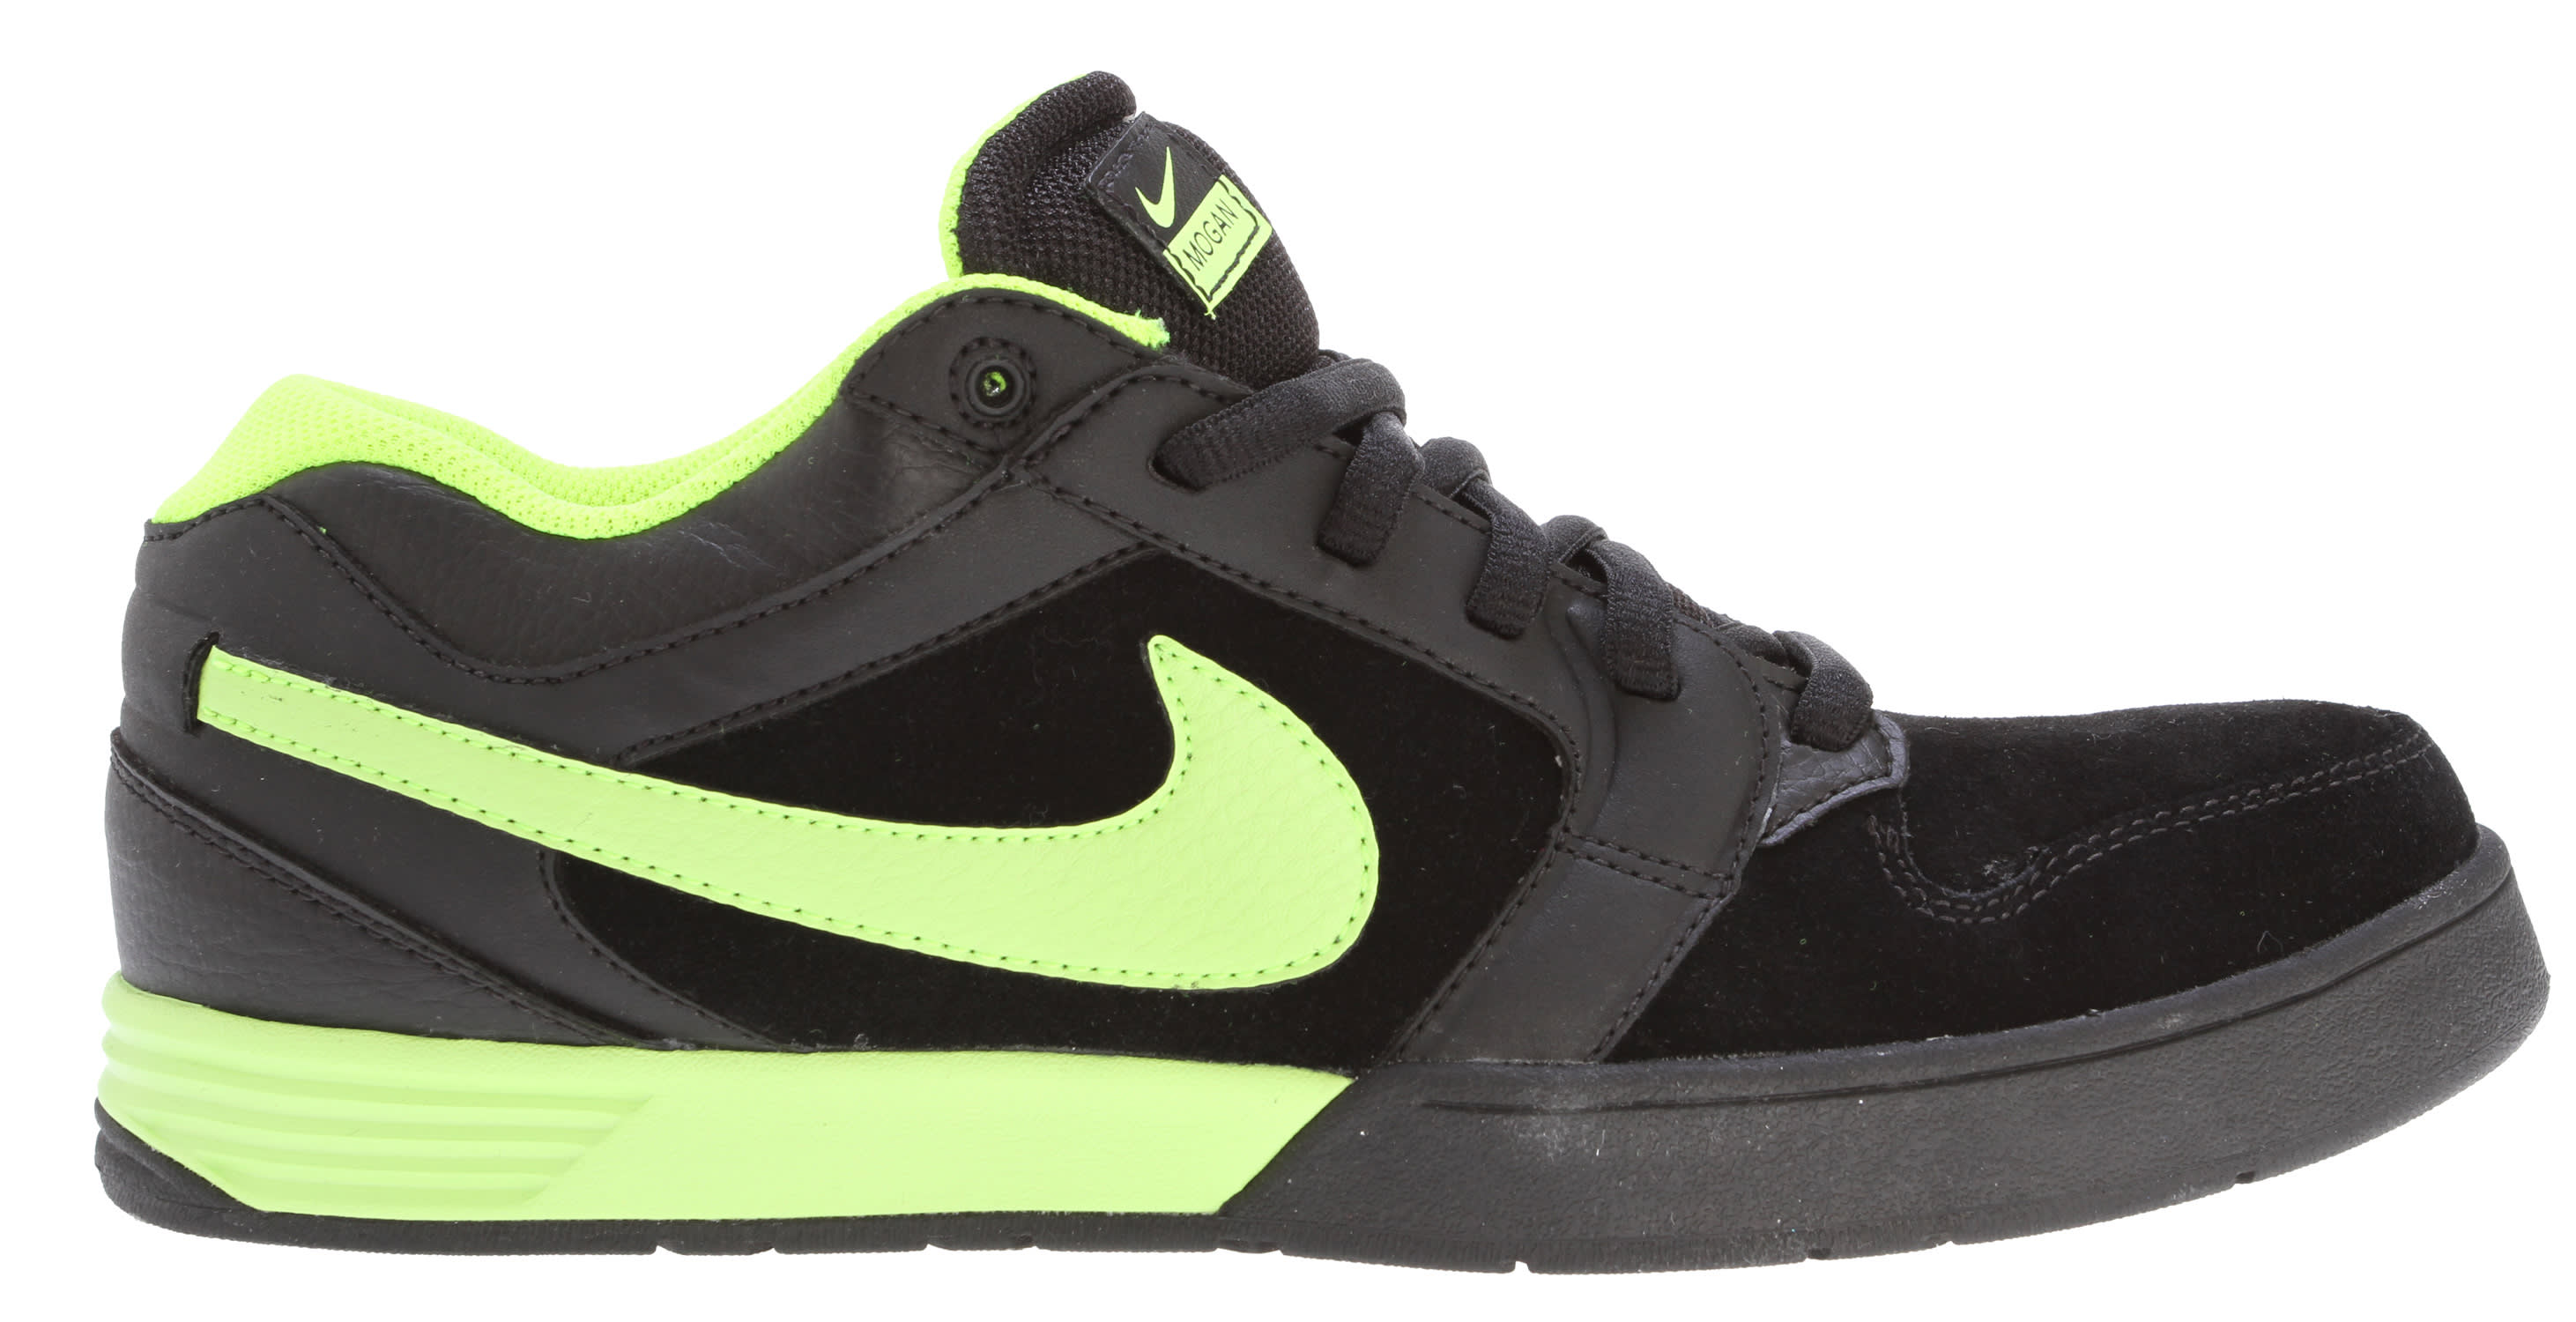 Nike Air Mogan Mid 3 Cheap Nike Zoom Shoes Musée des